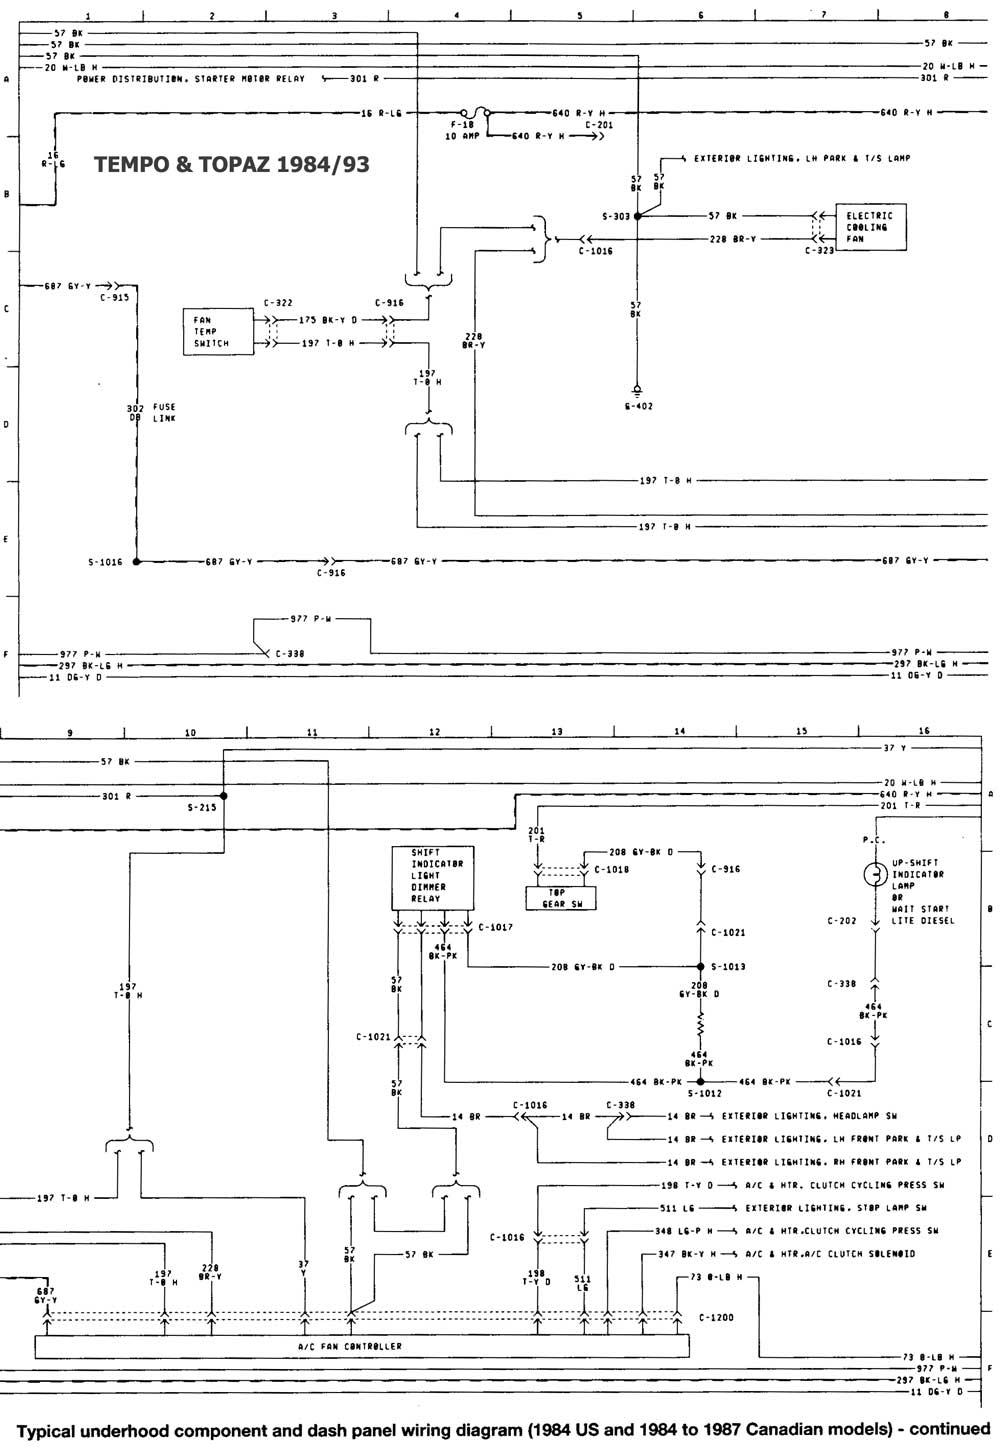 wiring diagrams for 1989 ford tempo